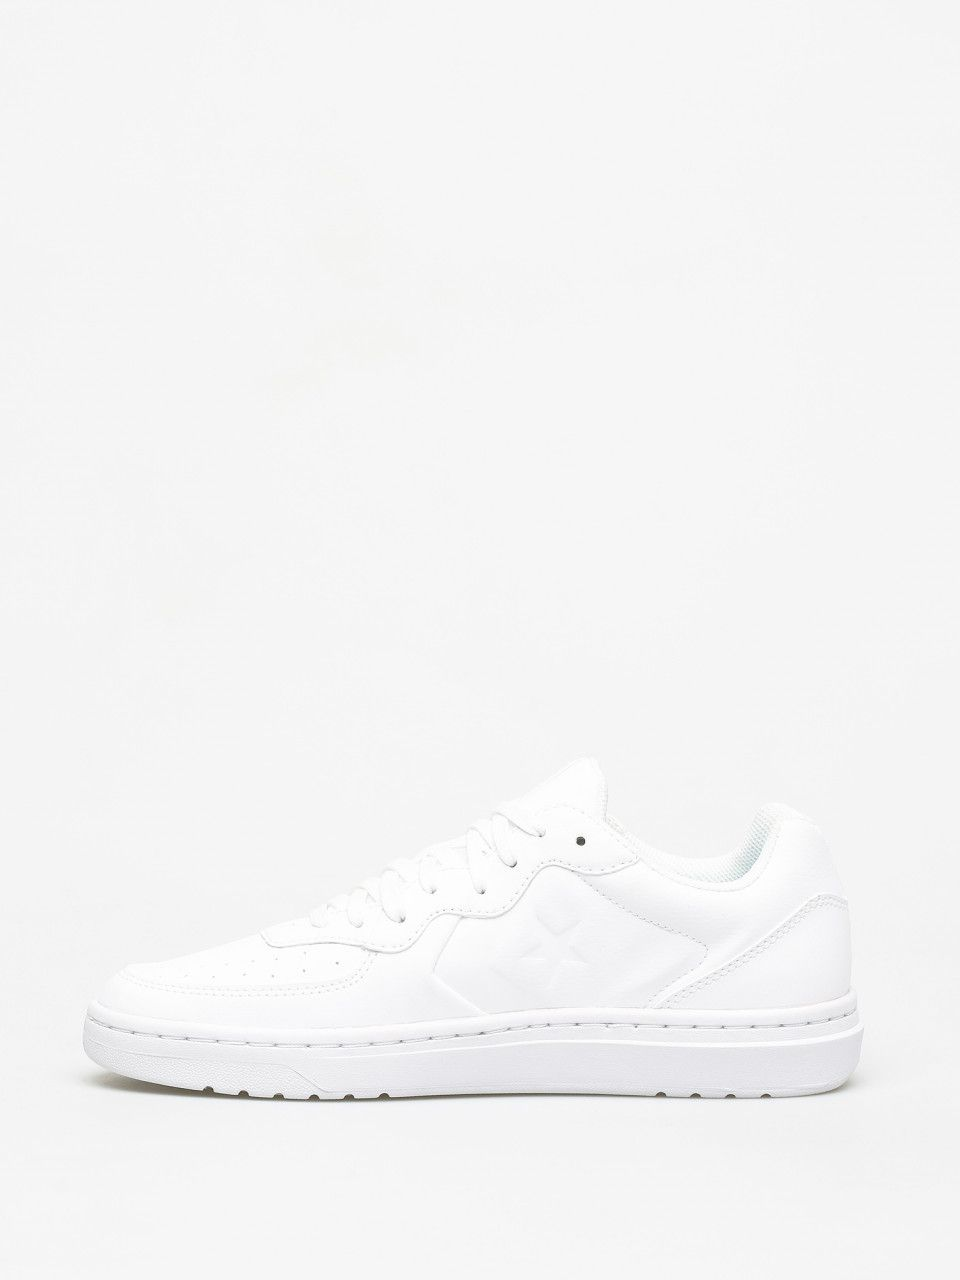 Converse Rival Ox White in 2020 | Brown